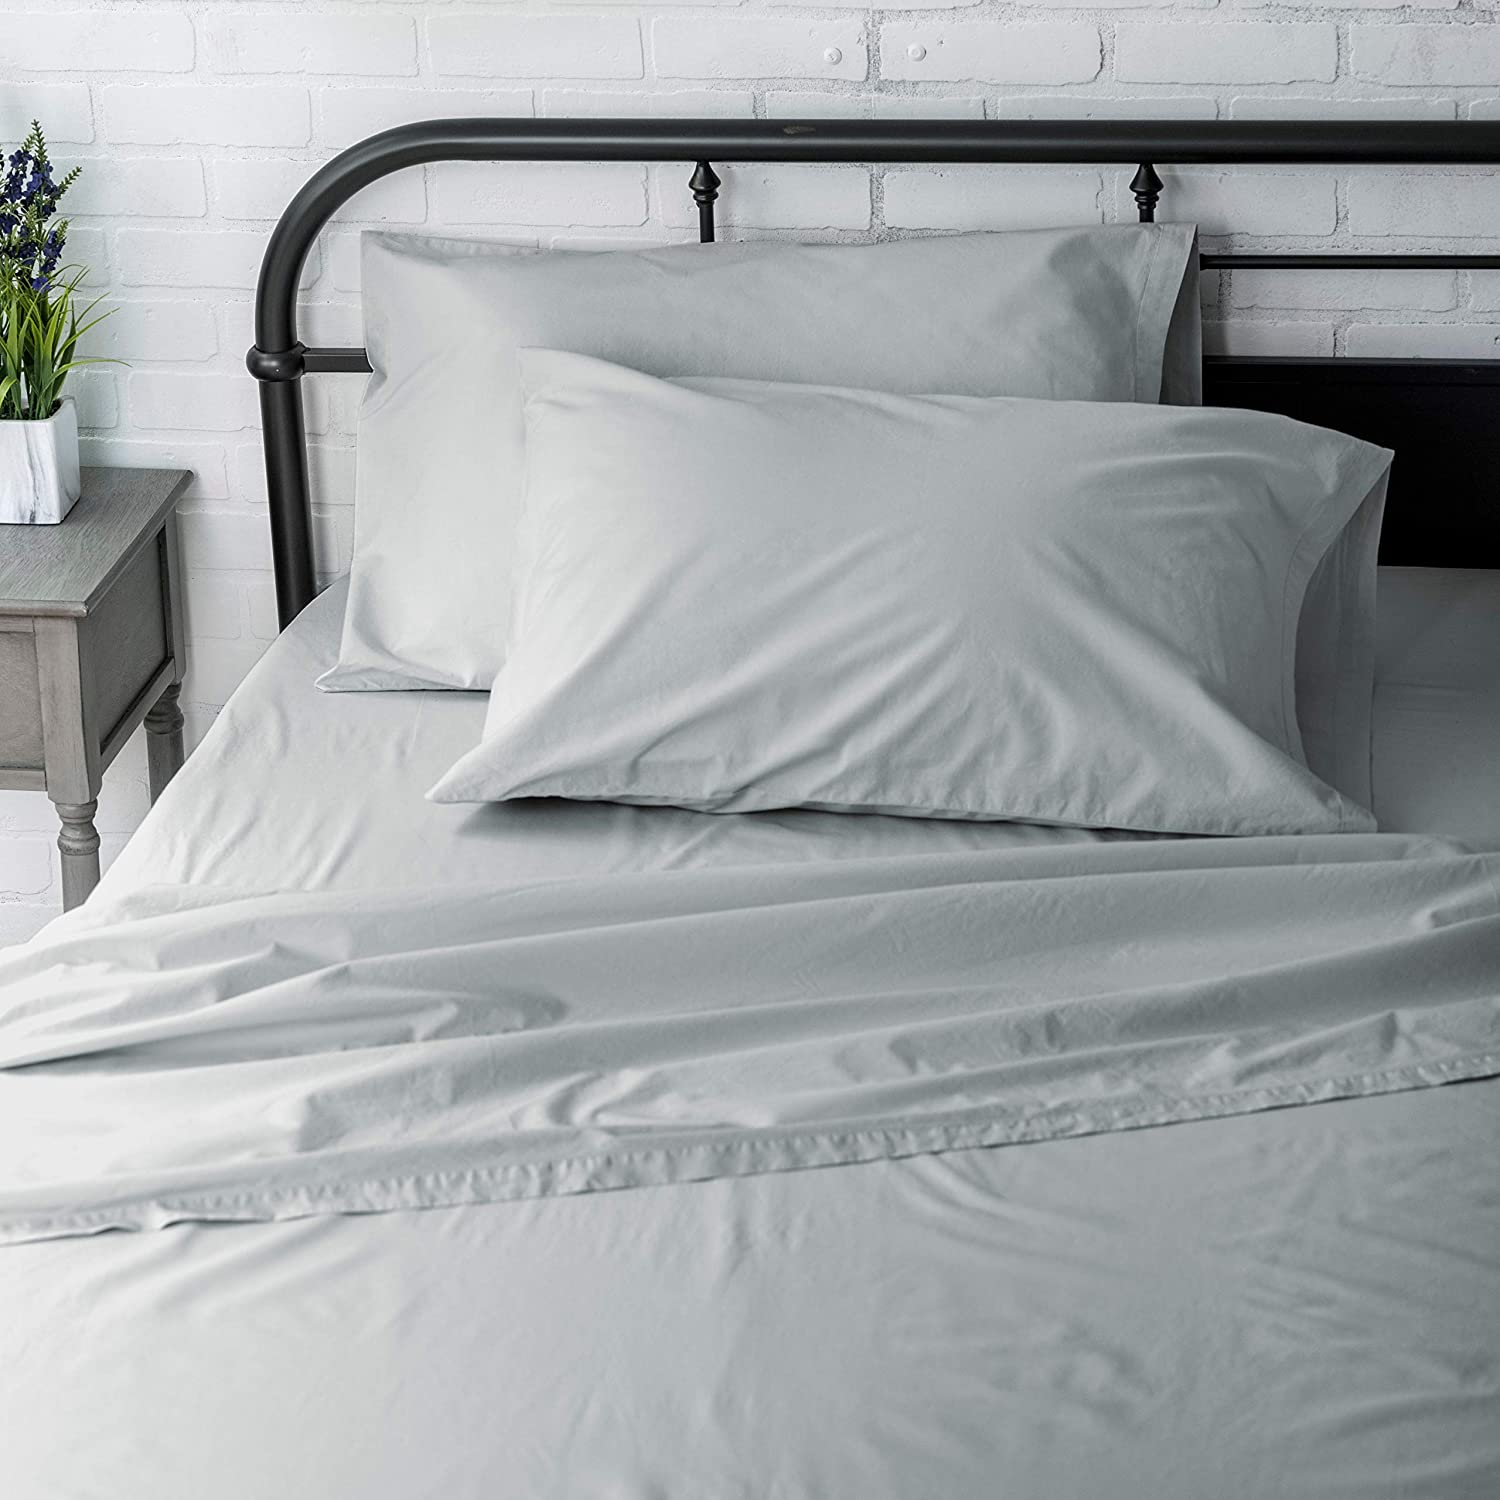 Welhome Full Size Sheet Set - 4 Piece - 100% Cotton Washed Percale - Breathable - Soft and Cozy - Deep Pocket - Easy fit - Platinum